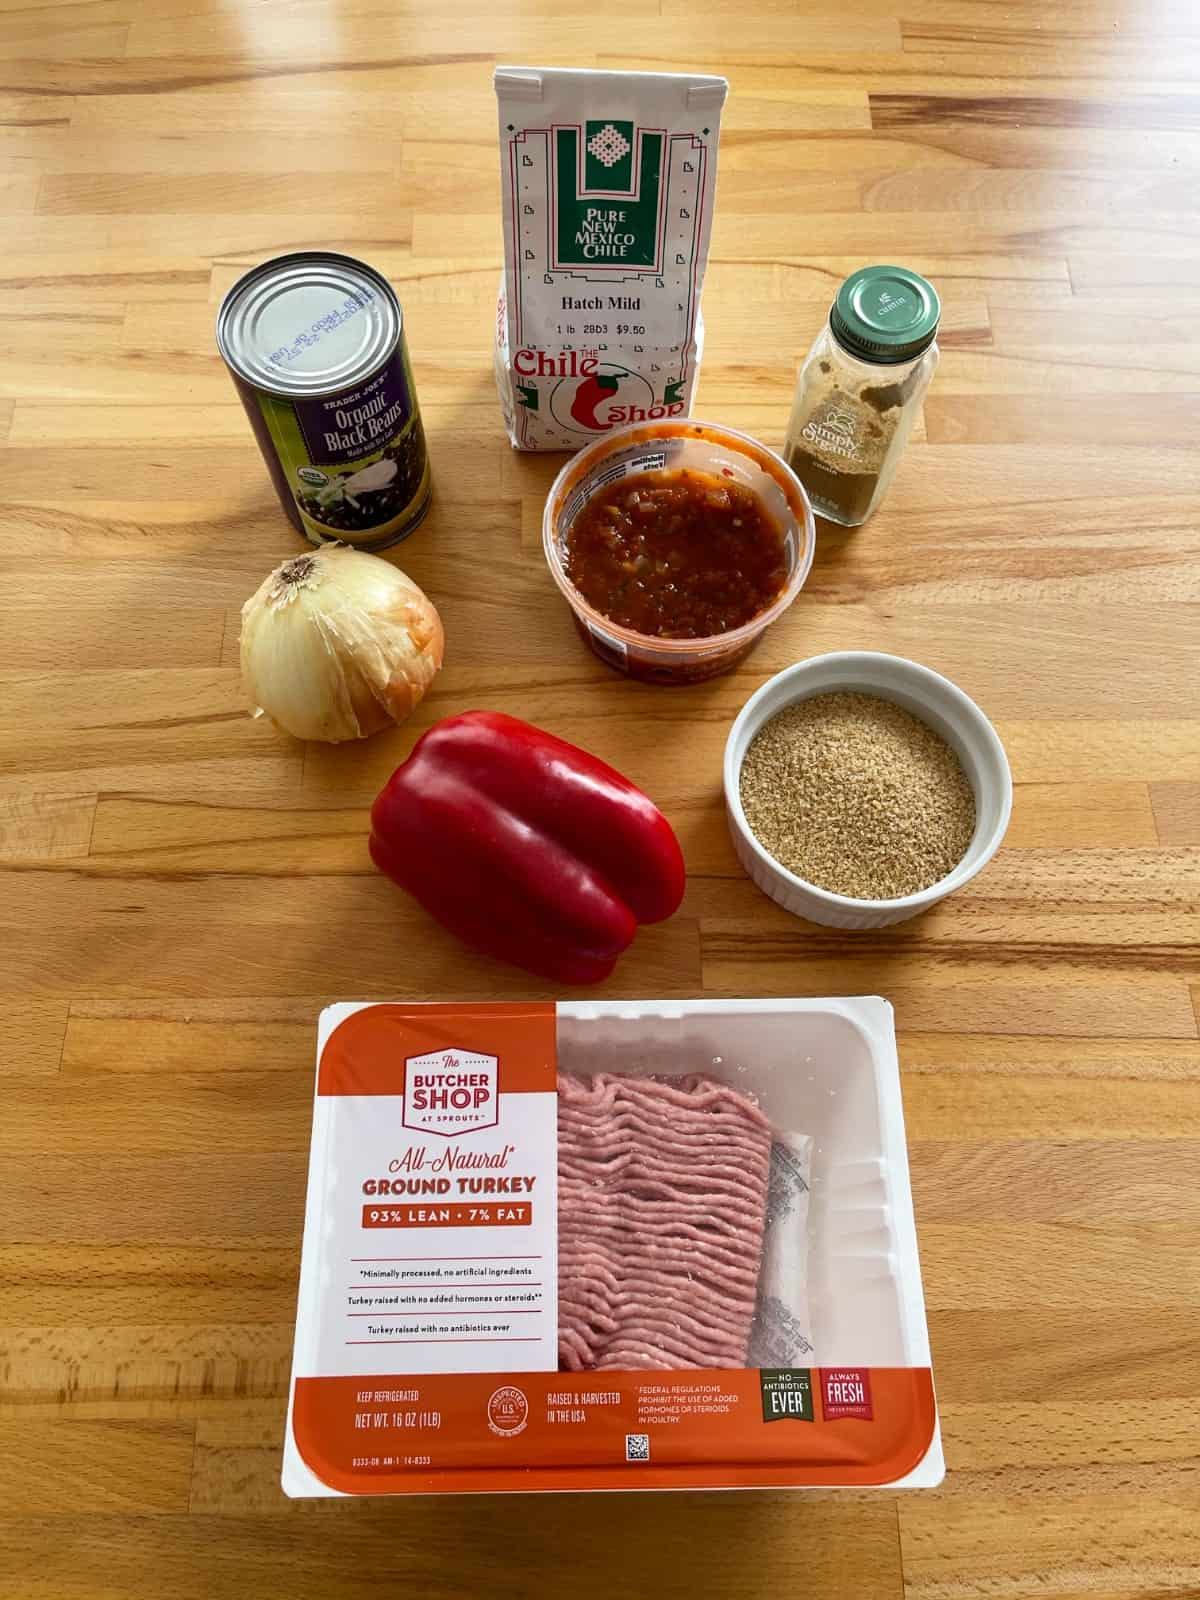 Ingredients for making taco casserole including ground turkey, black beans, salsa, onion, chili powder, cumin and bulgur.